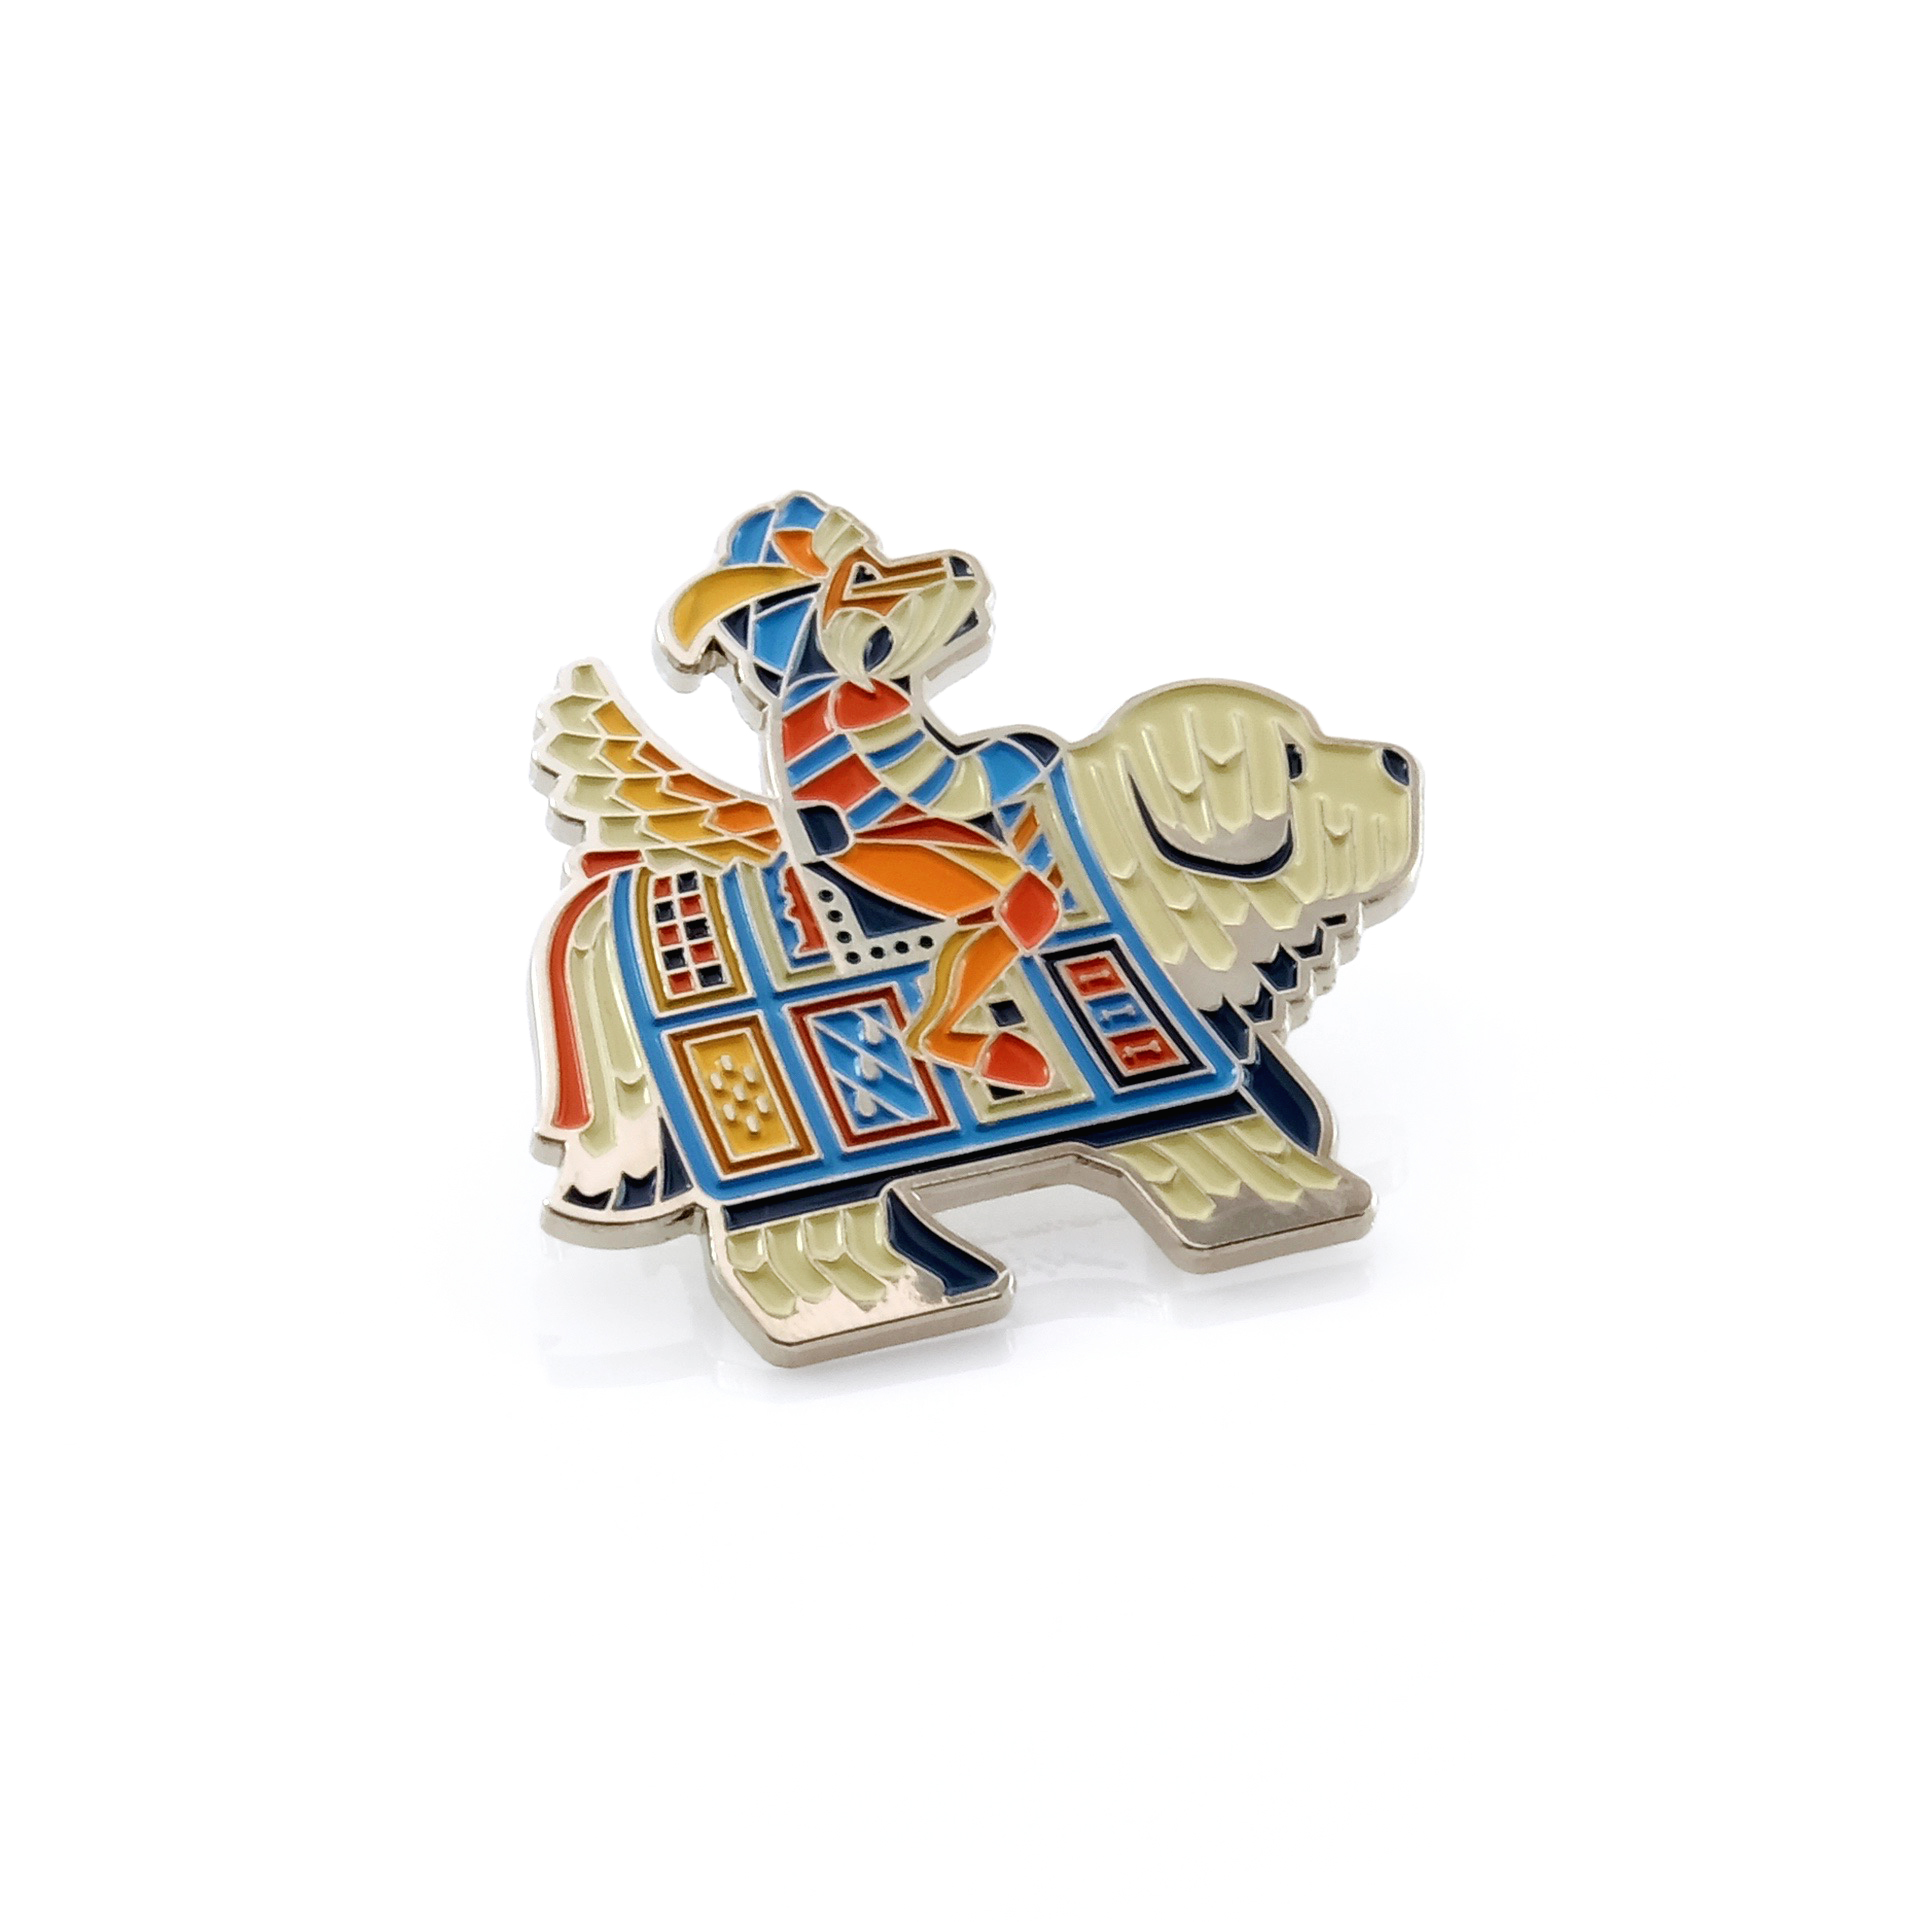 Labyrinth 30th Anniversary Enamel Pins by DKNG